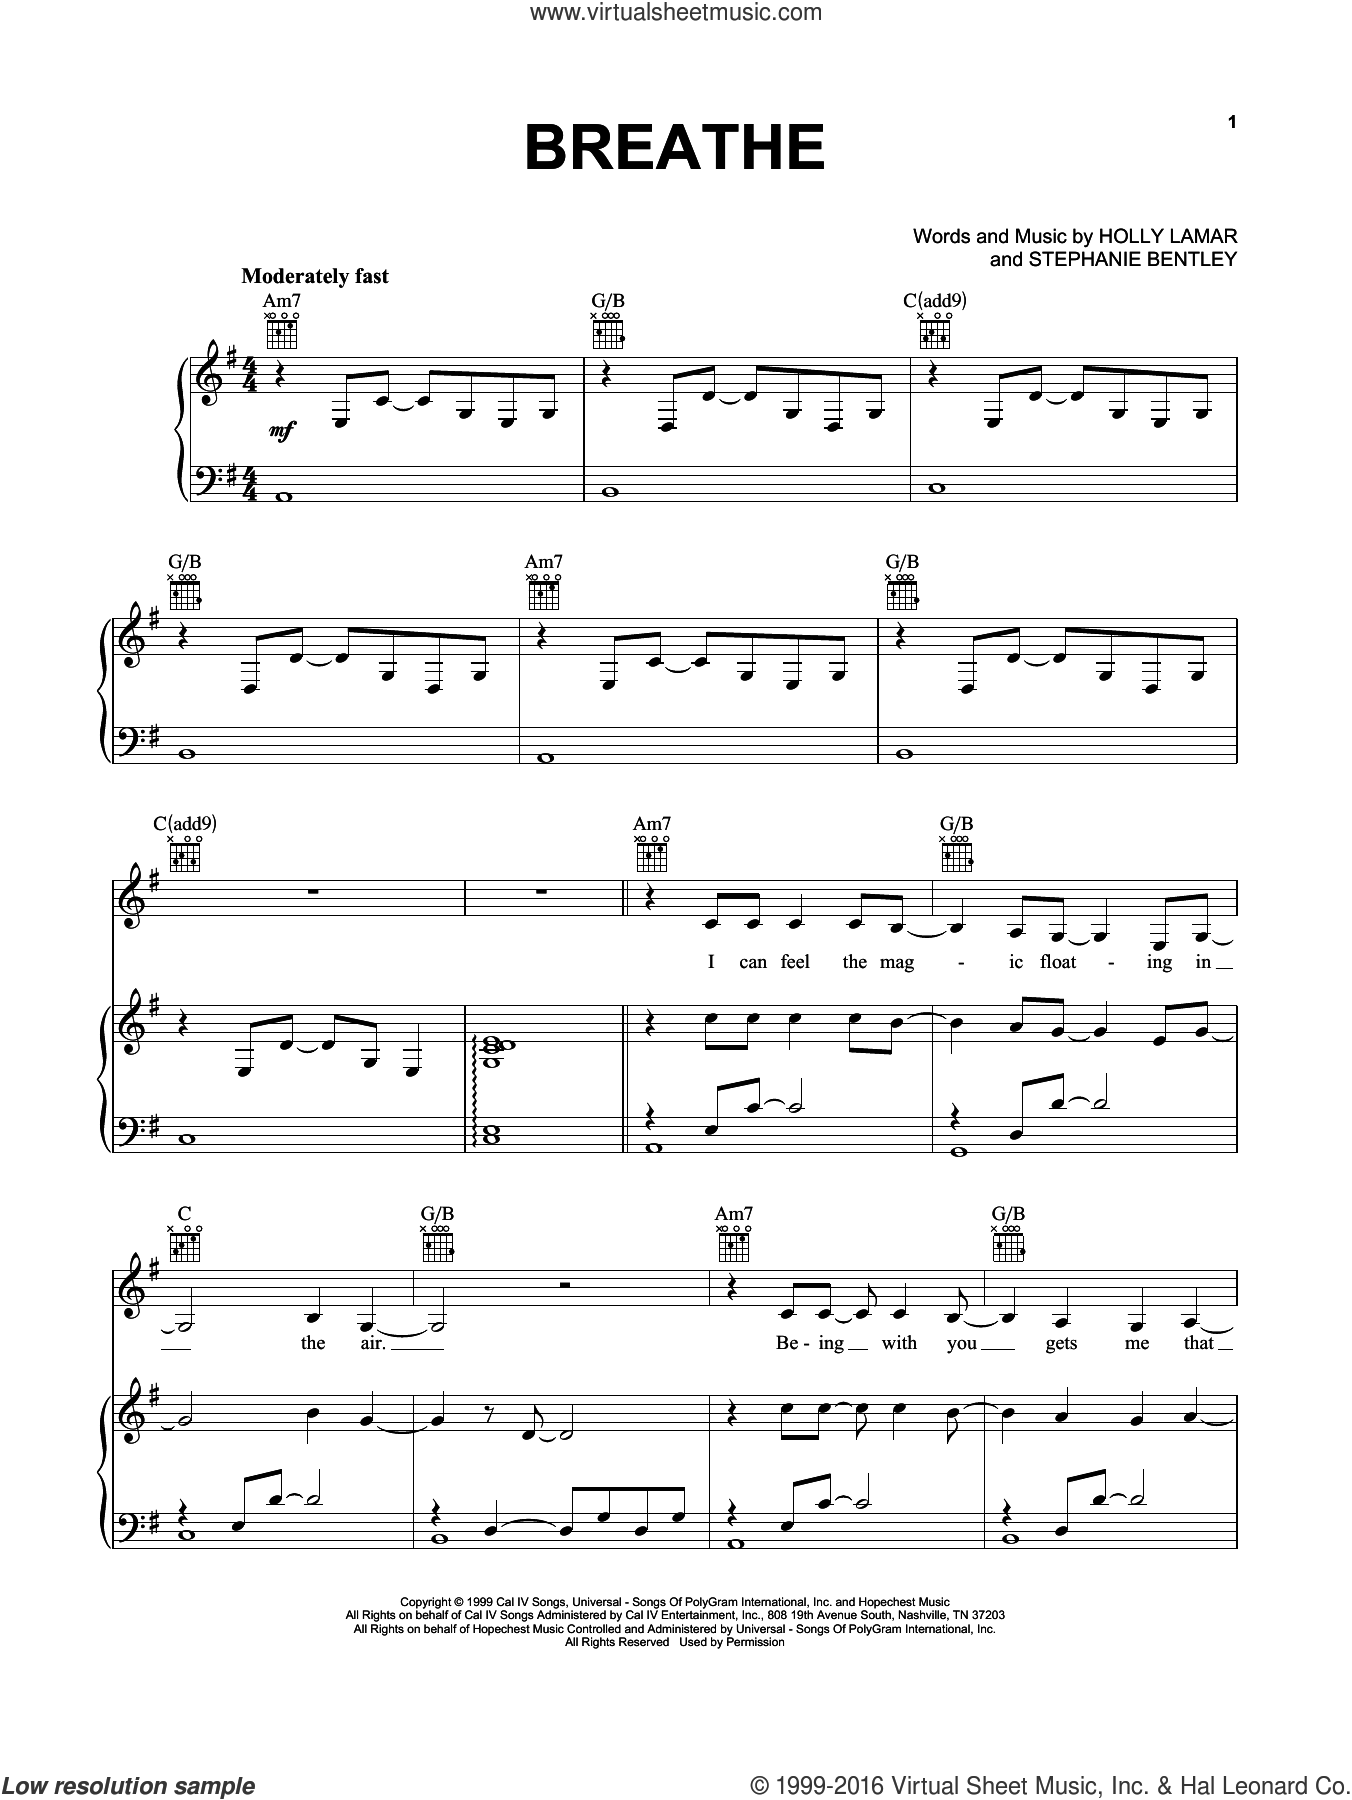 Breathe sheet music for voice, piano or guitar by Faith Hill and Holly Lamar. Score Image Preview.